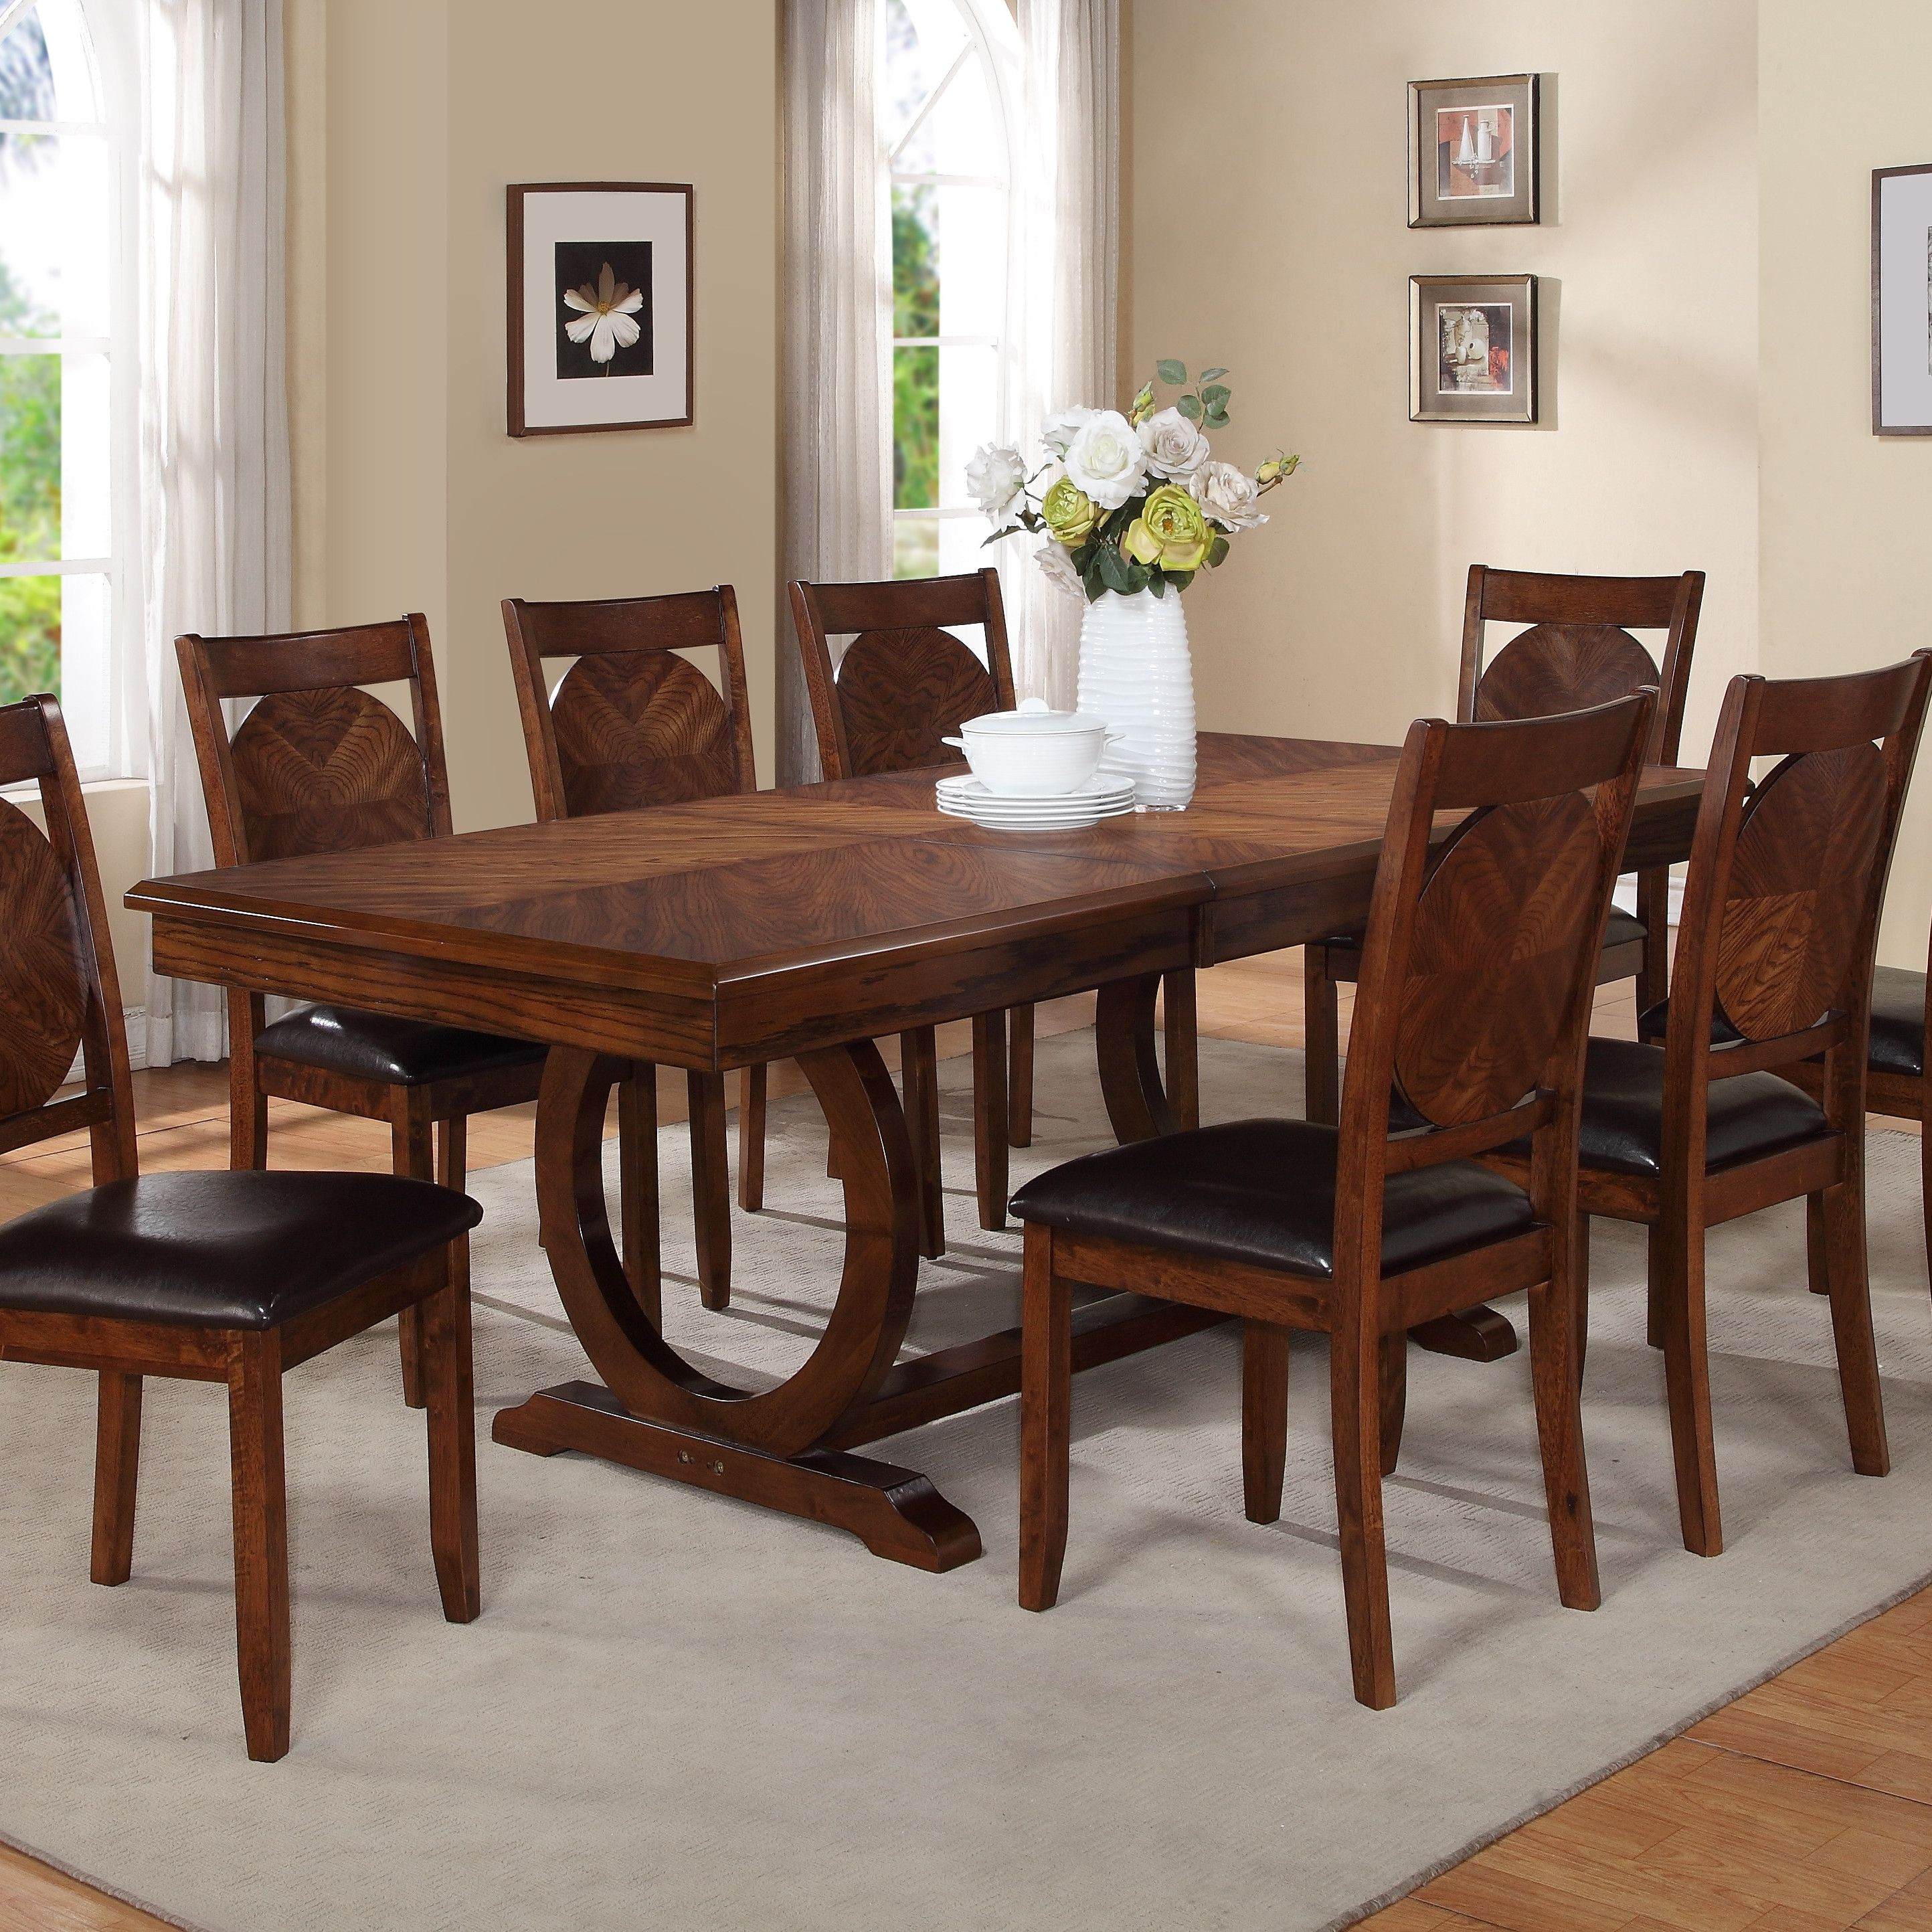 Worldmenageriekapoorextendablediningtablewdmg2696 2887 Entrancing Extendable Dining Room Sets Review